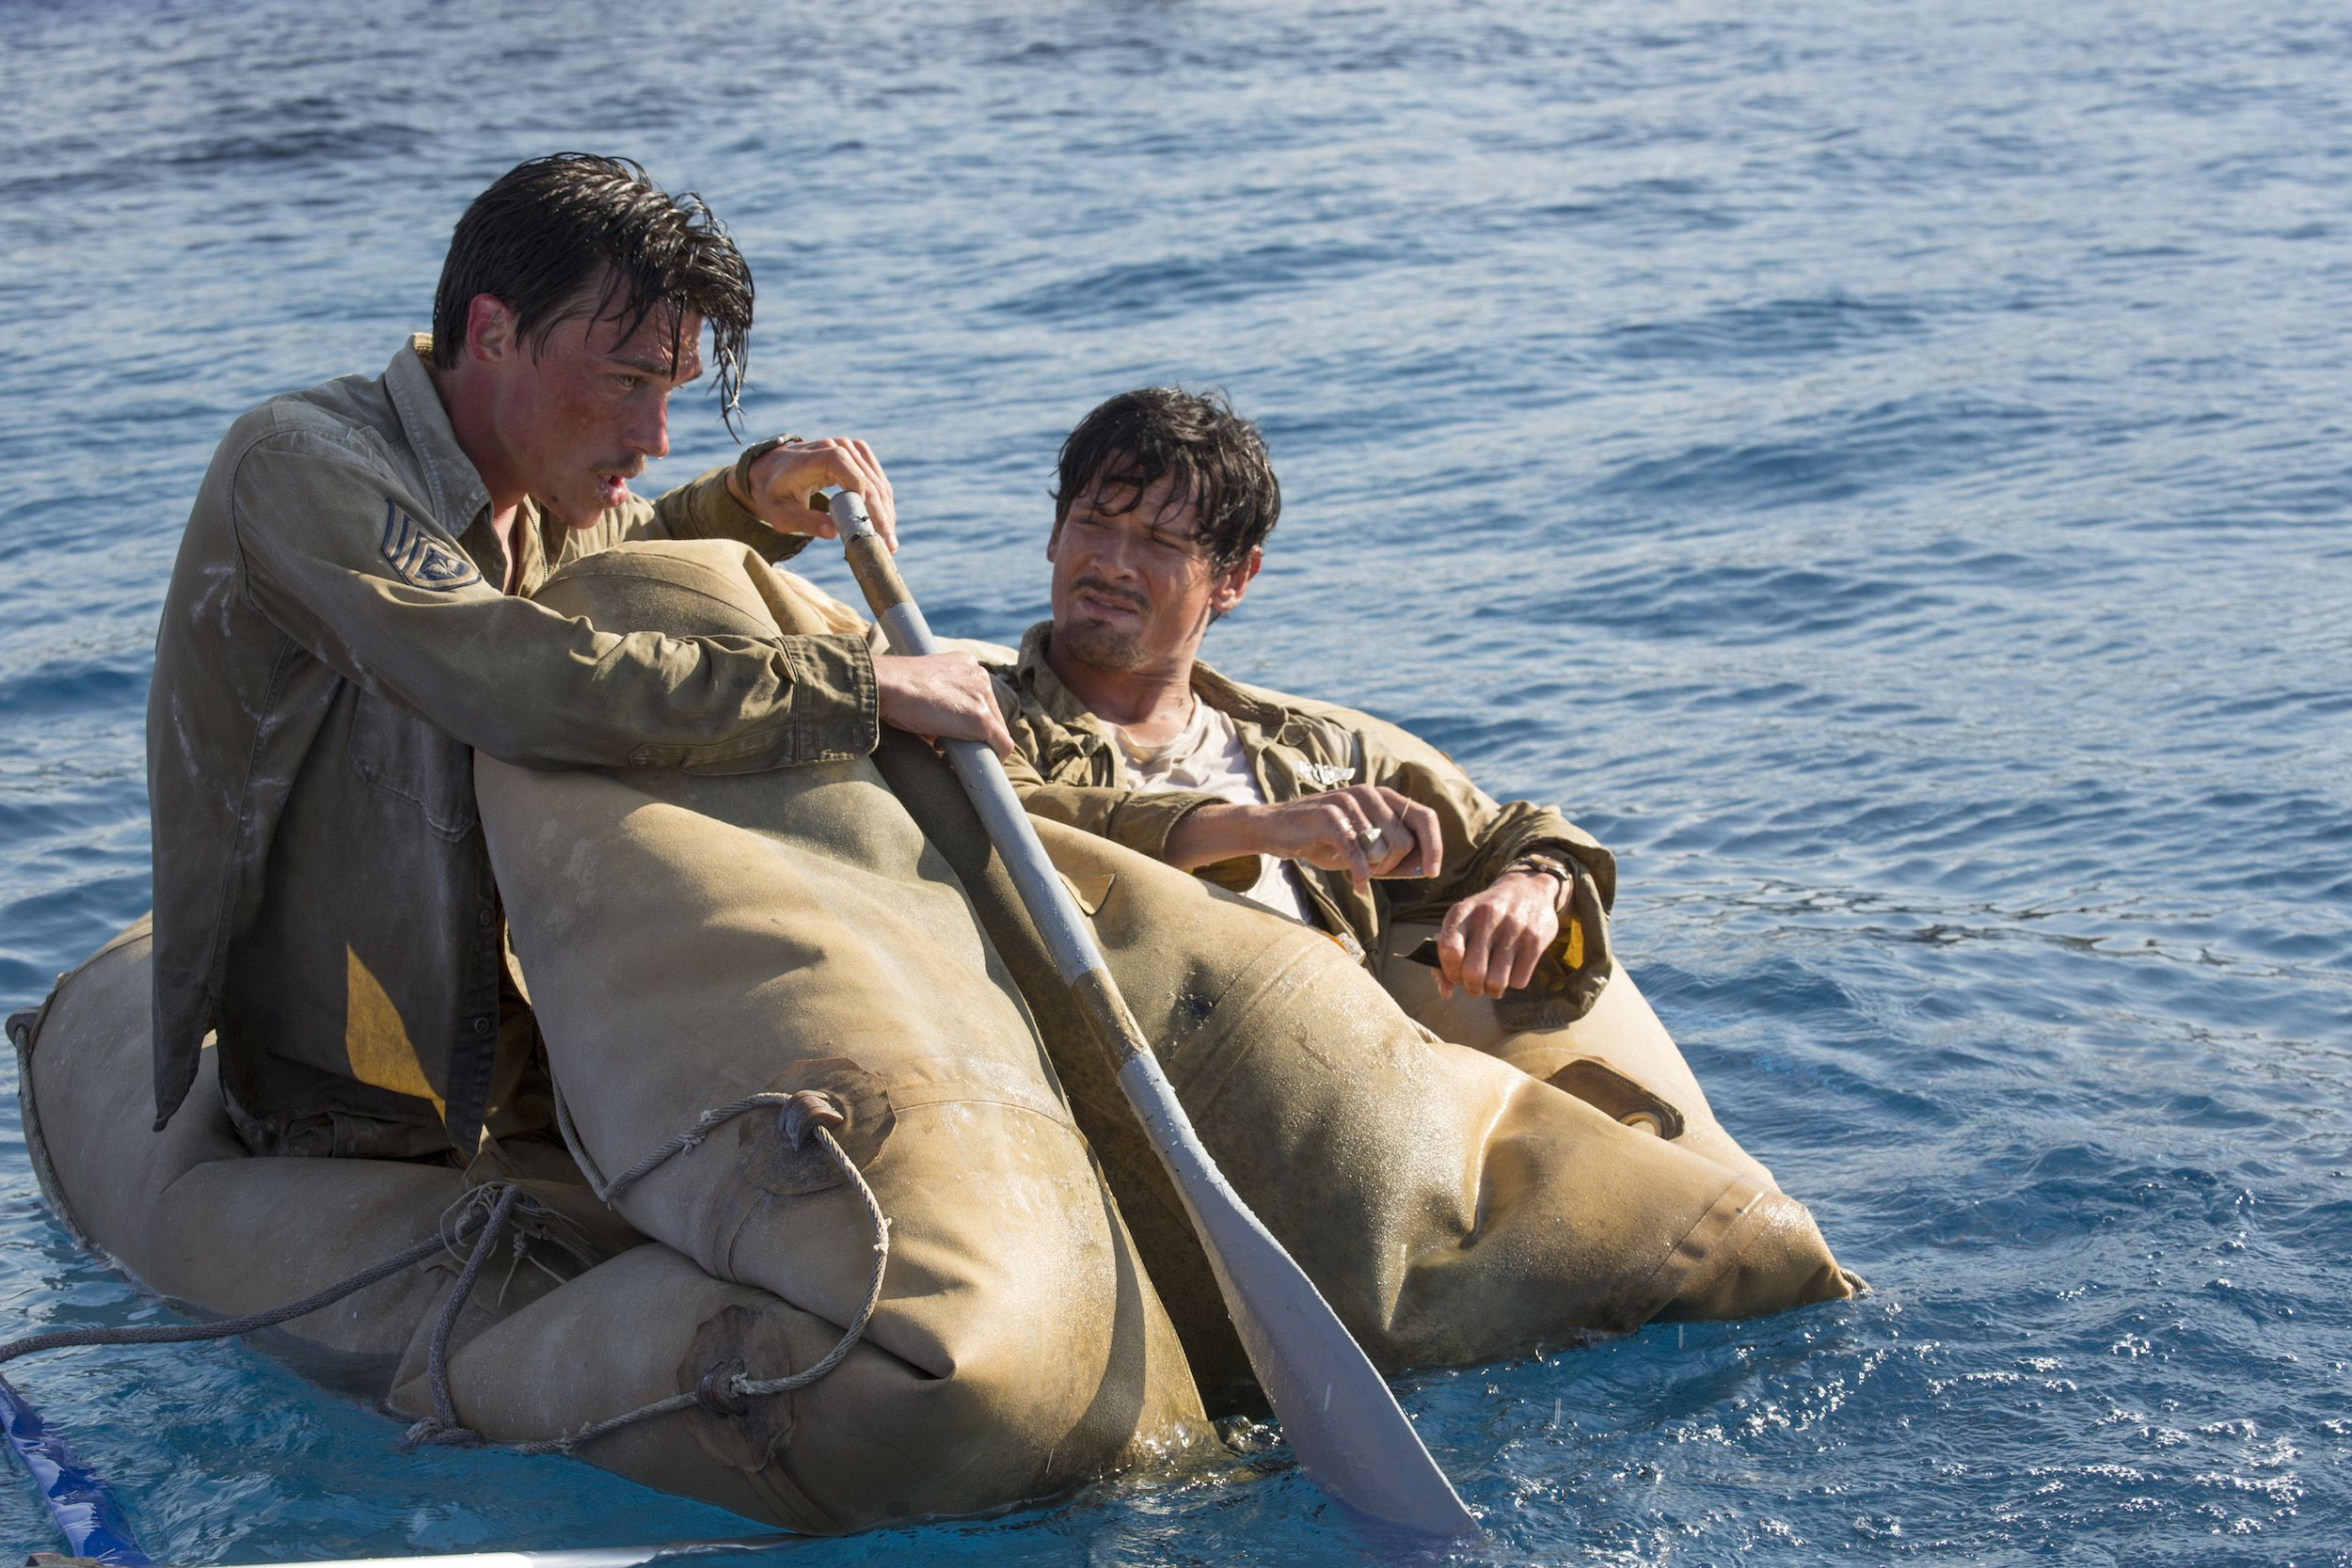 Louis Zamperini Survived A Mind Boggling 47 Days Stranded At Sea Unbrokenmovie Talking Picture I Movie Favorite Movies